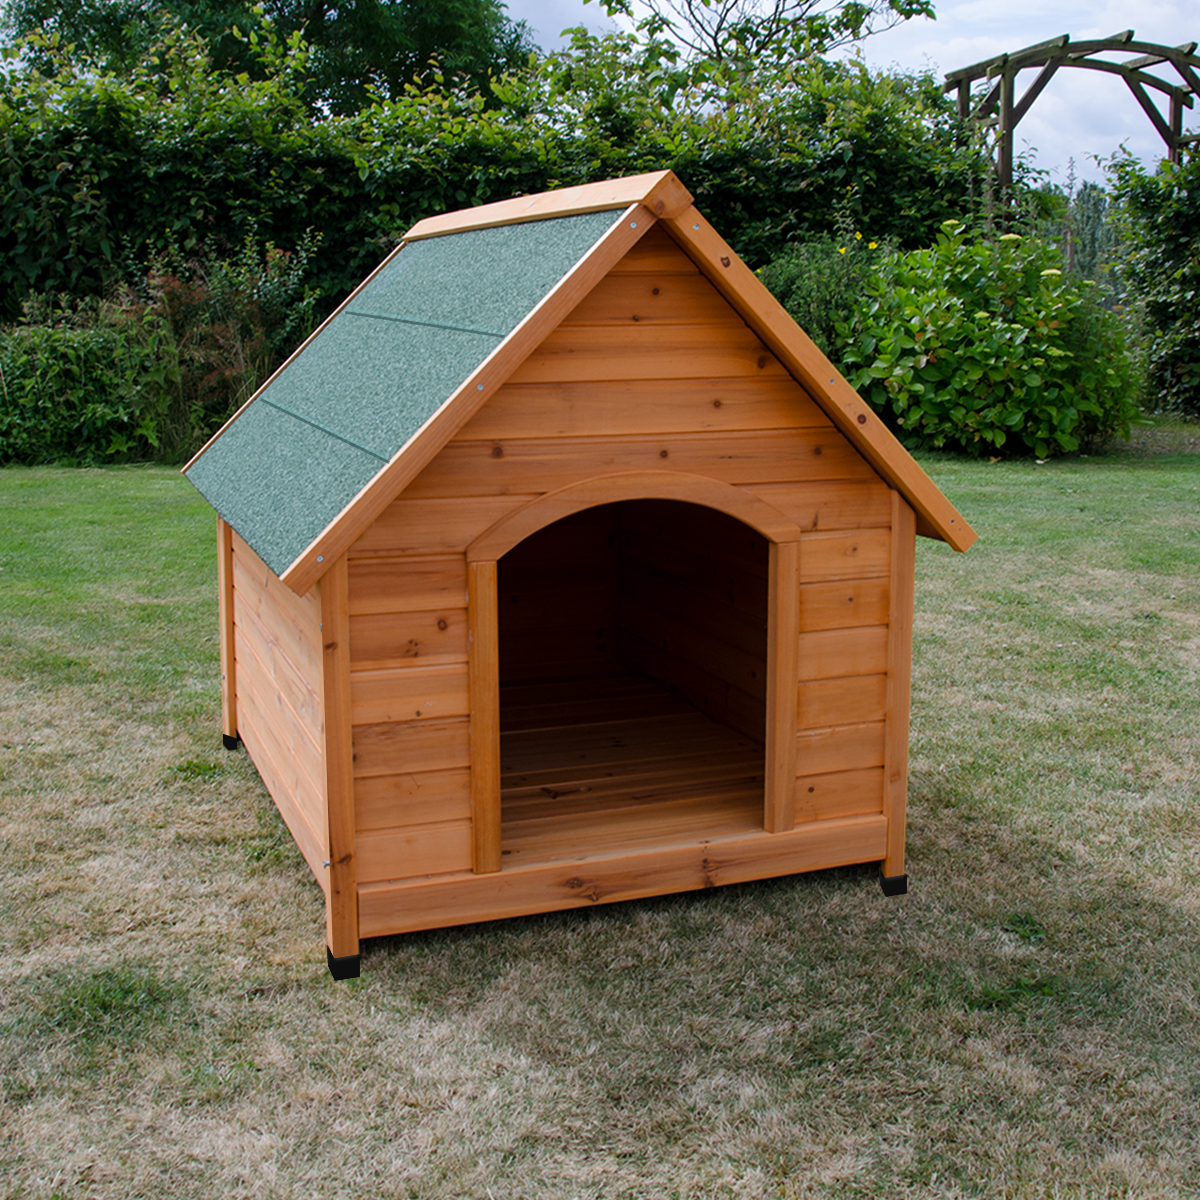 EXTRA LARGE WOODEN DOG KENNEL PET HOUSE OUTDOOR SHELTER